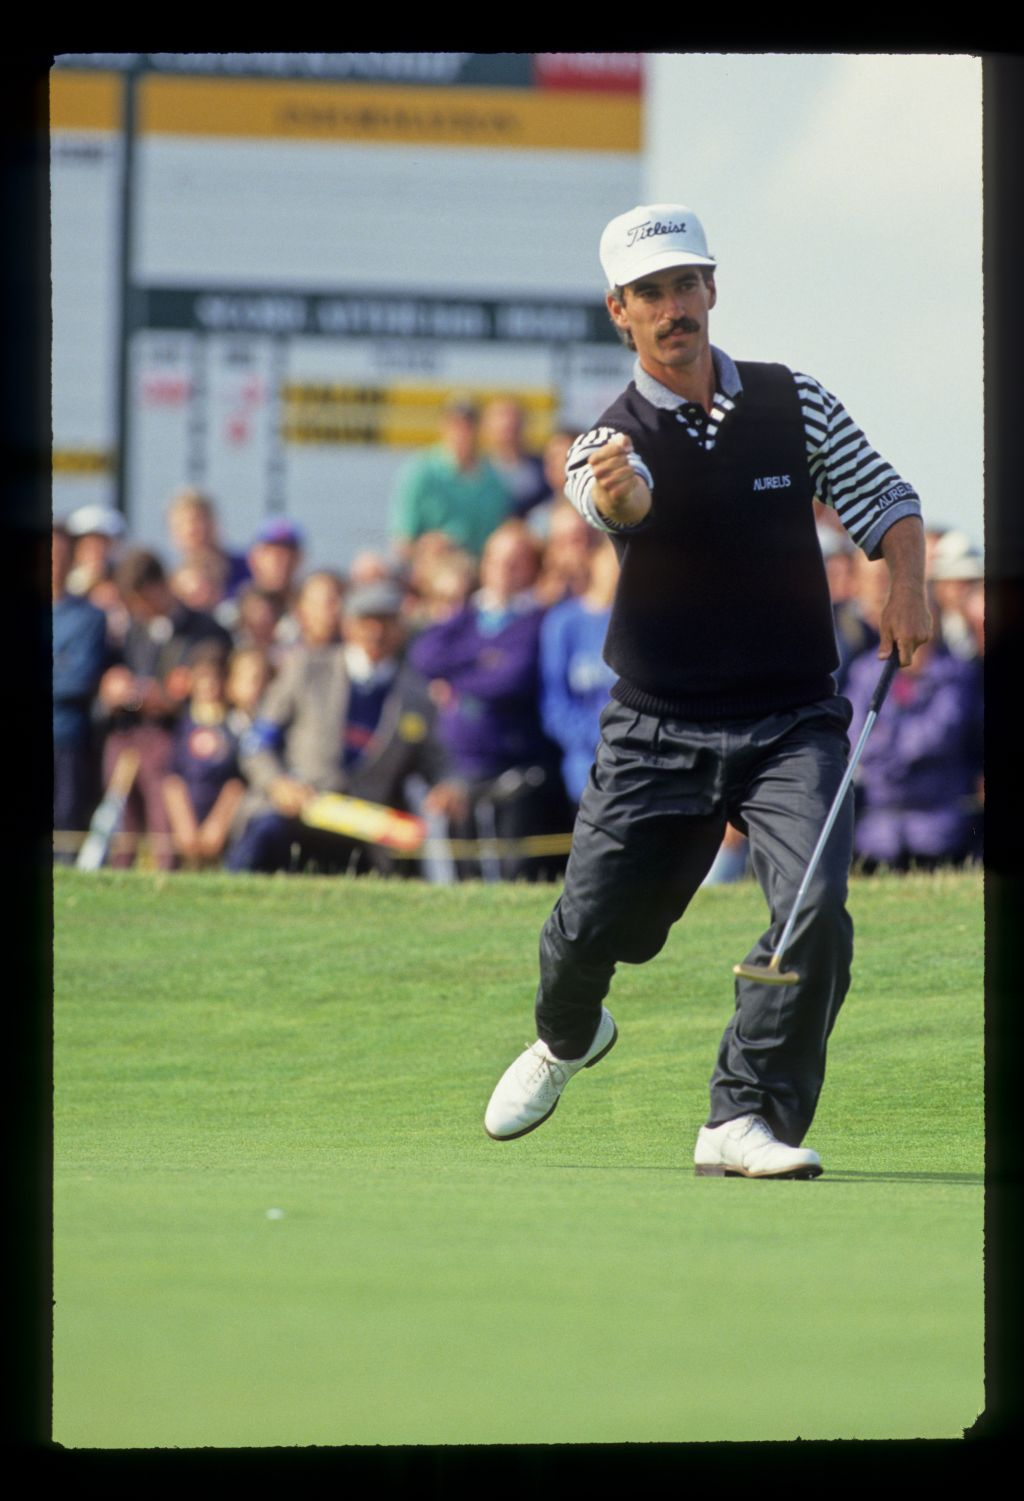 Corey Pavin giving a fist pump after a successful putt on his way to fourth place during the 1993 Open Championship